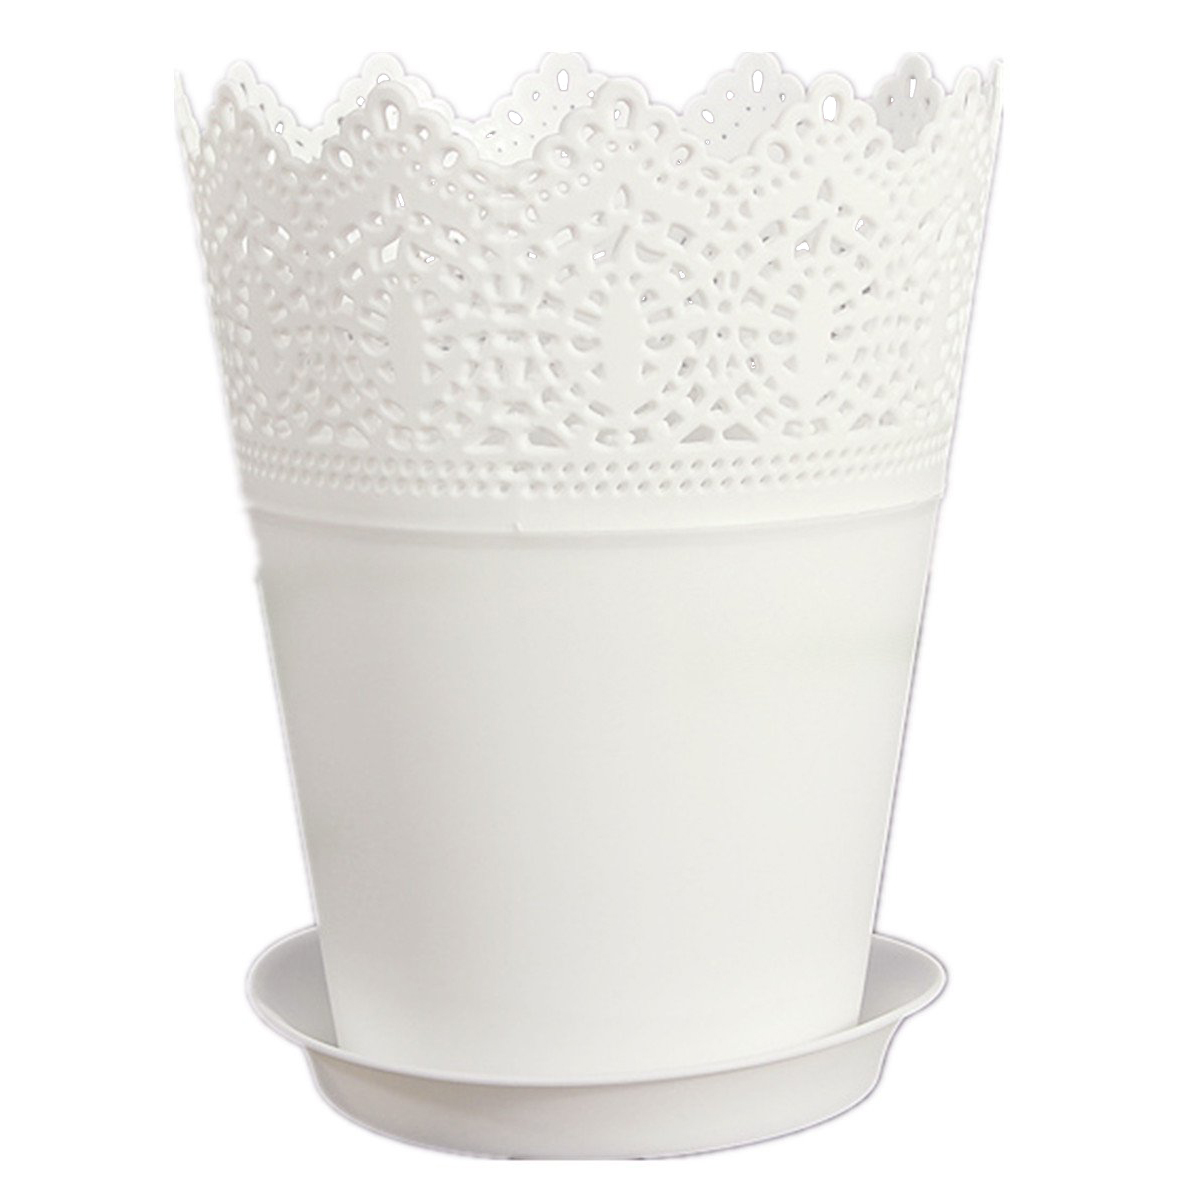 blanc dentelle vase pot de fleurs en plastique wt ebay. Black Bedroom Furniture Sets. Home Design Ideas